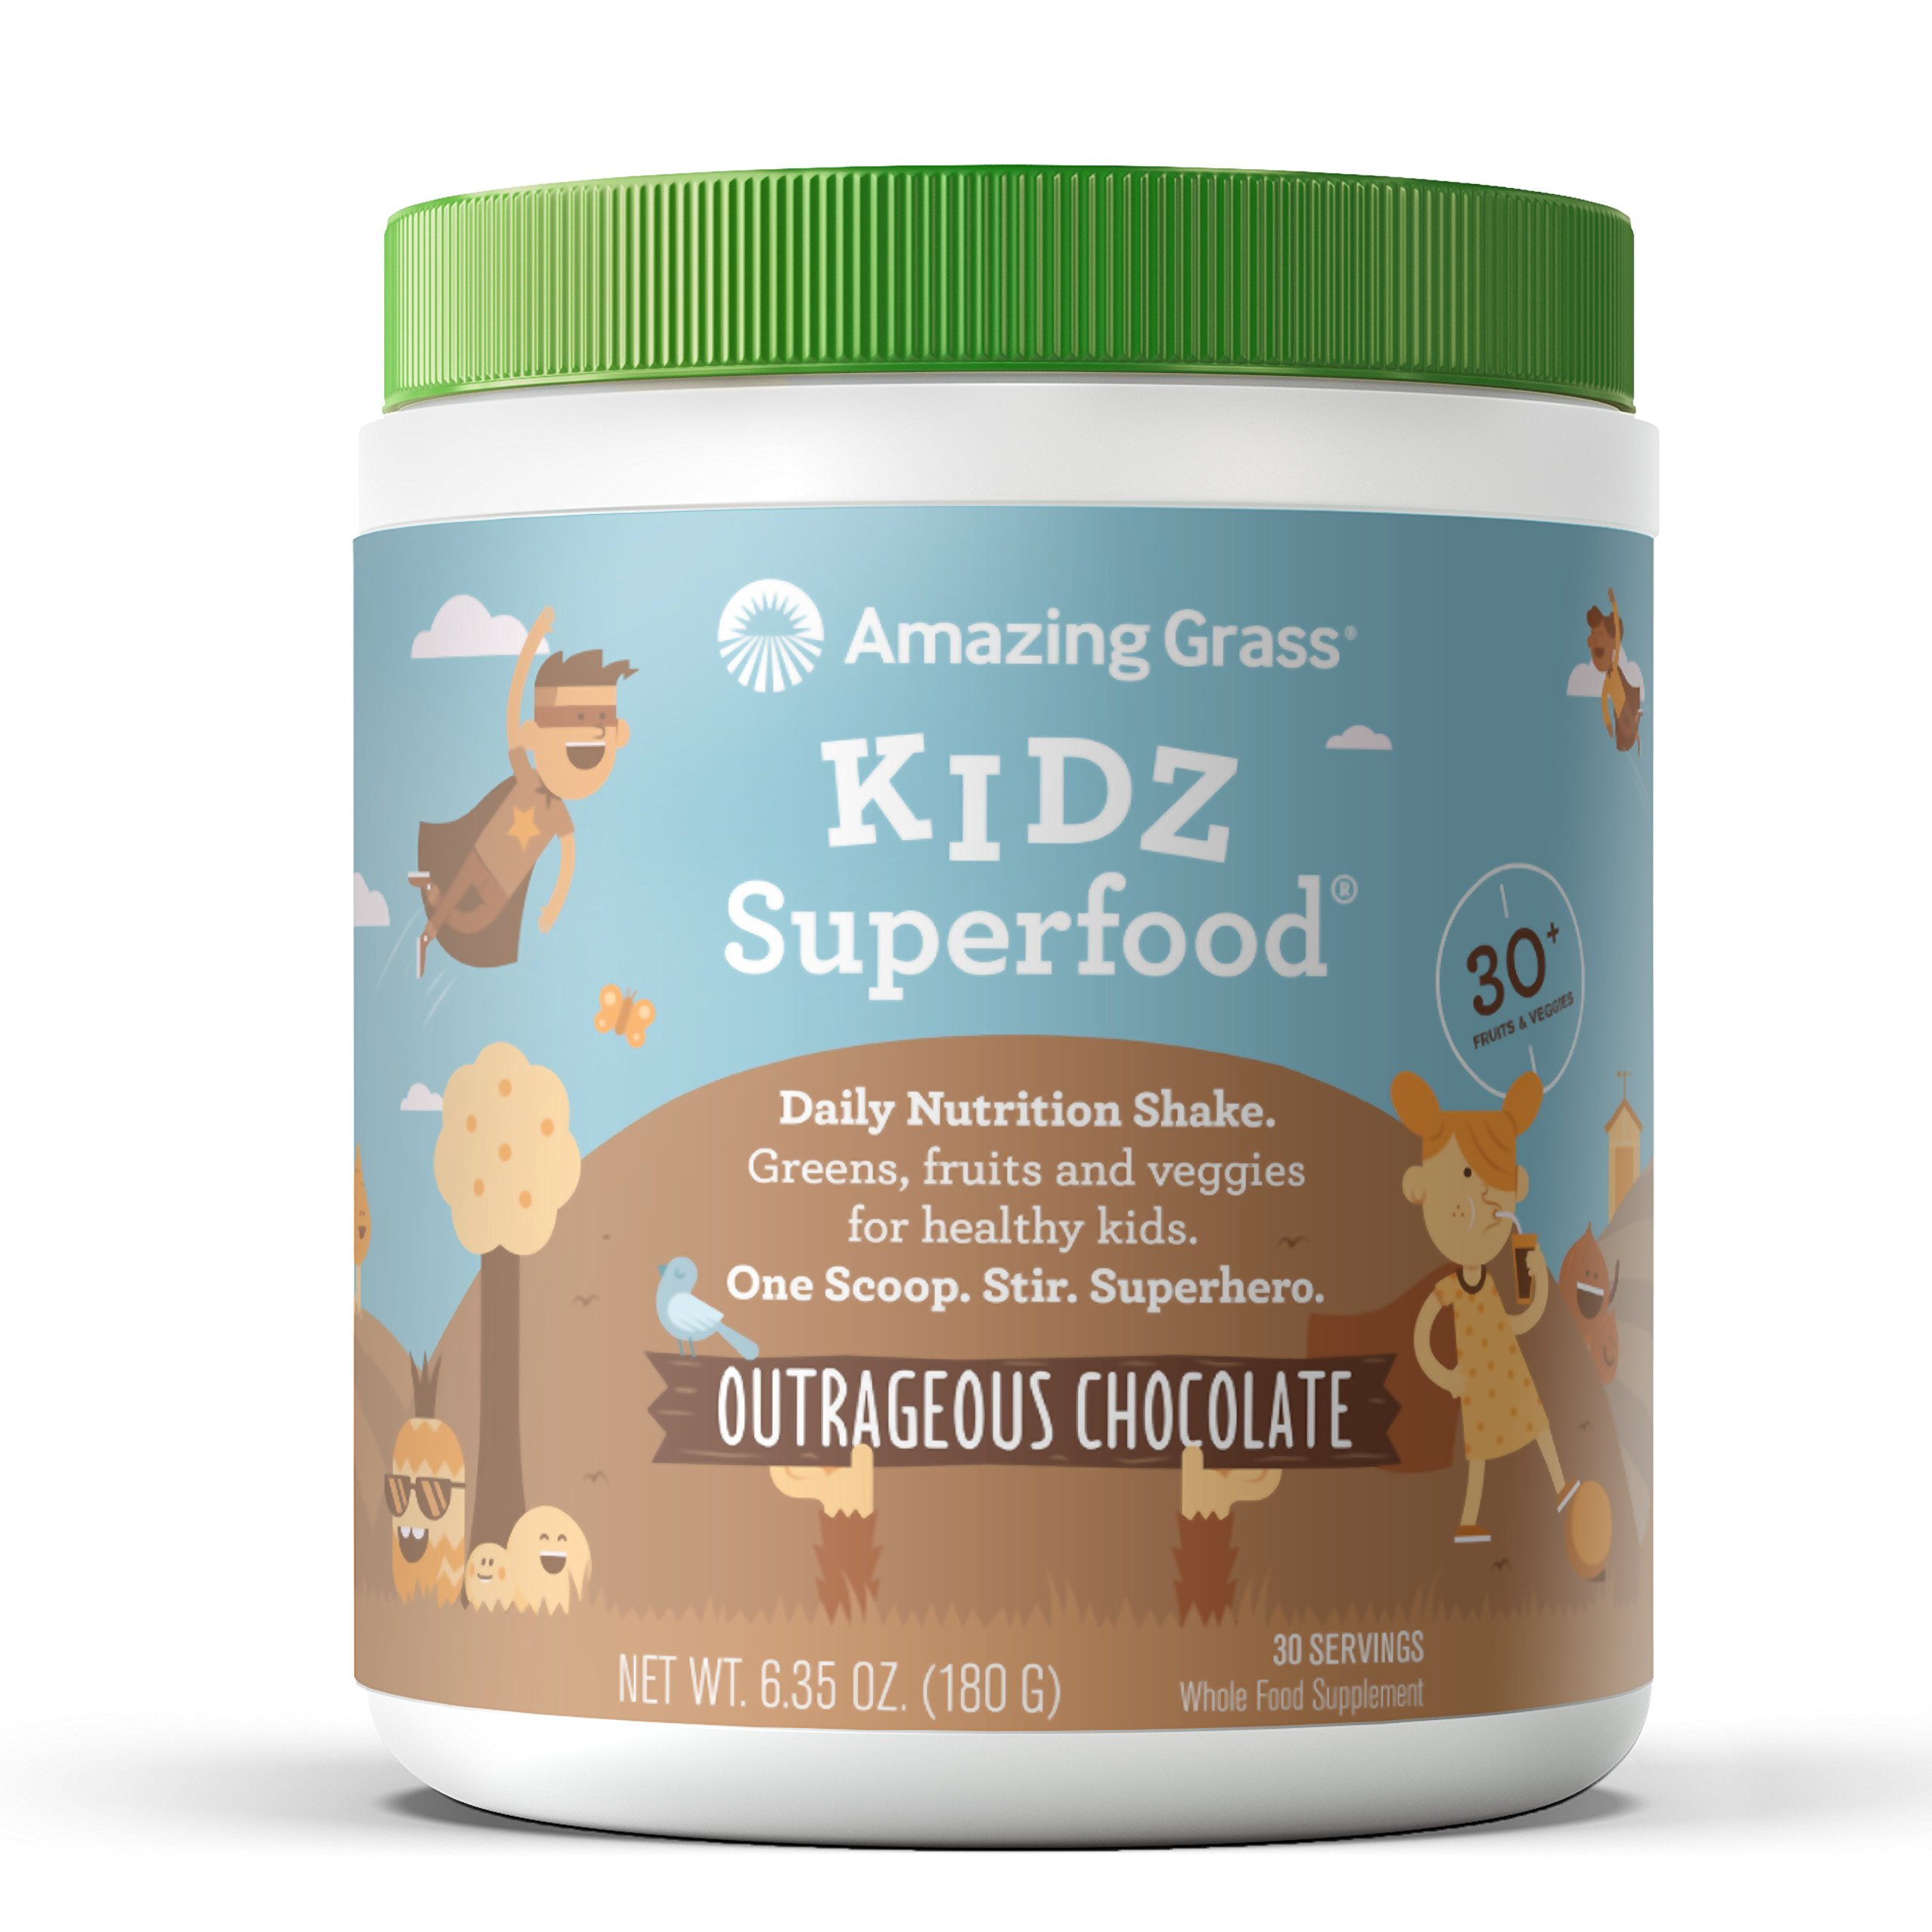 Amazing Grass, Organic Vegan Kidz Superfood Powder with Greens, Flavor: Outrageous Chocolate, 30 Servings